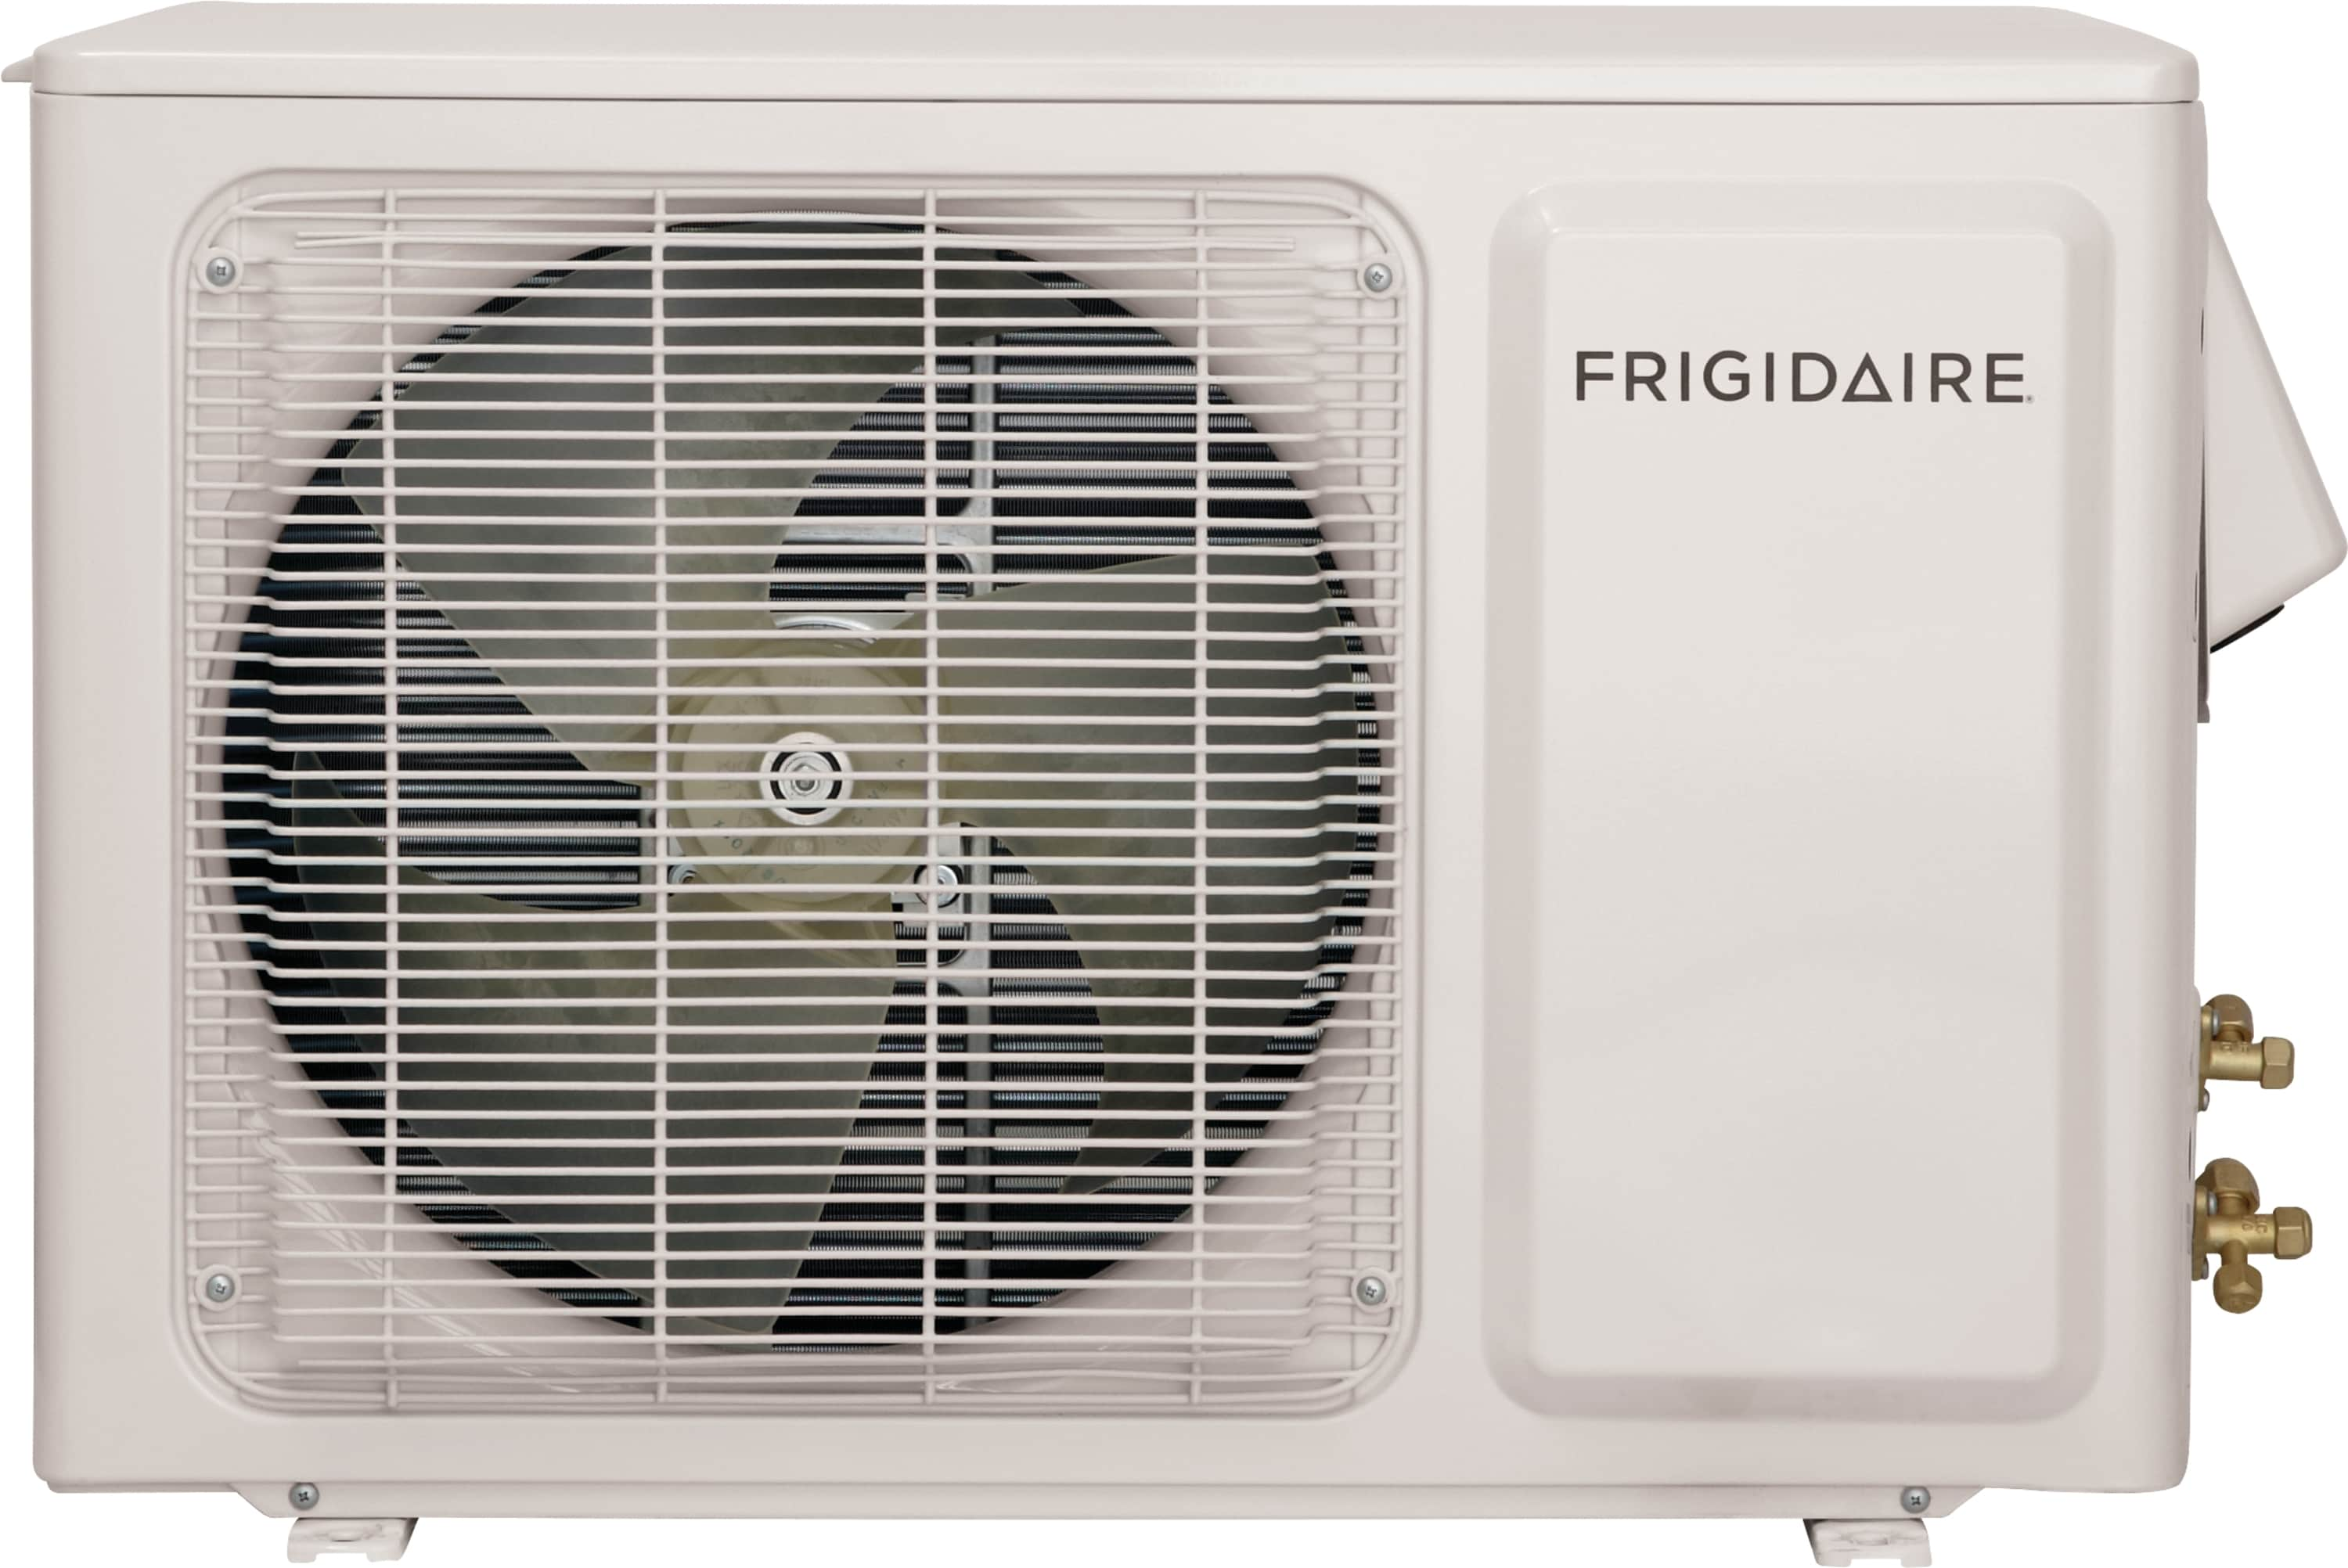 Ductless Split Air Conditioner Cool and Heat- 9,000 BTU, Heat Pump- 115V- Outdoor unit